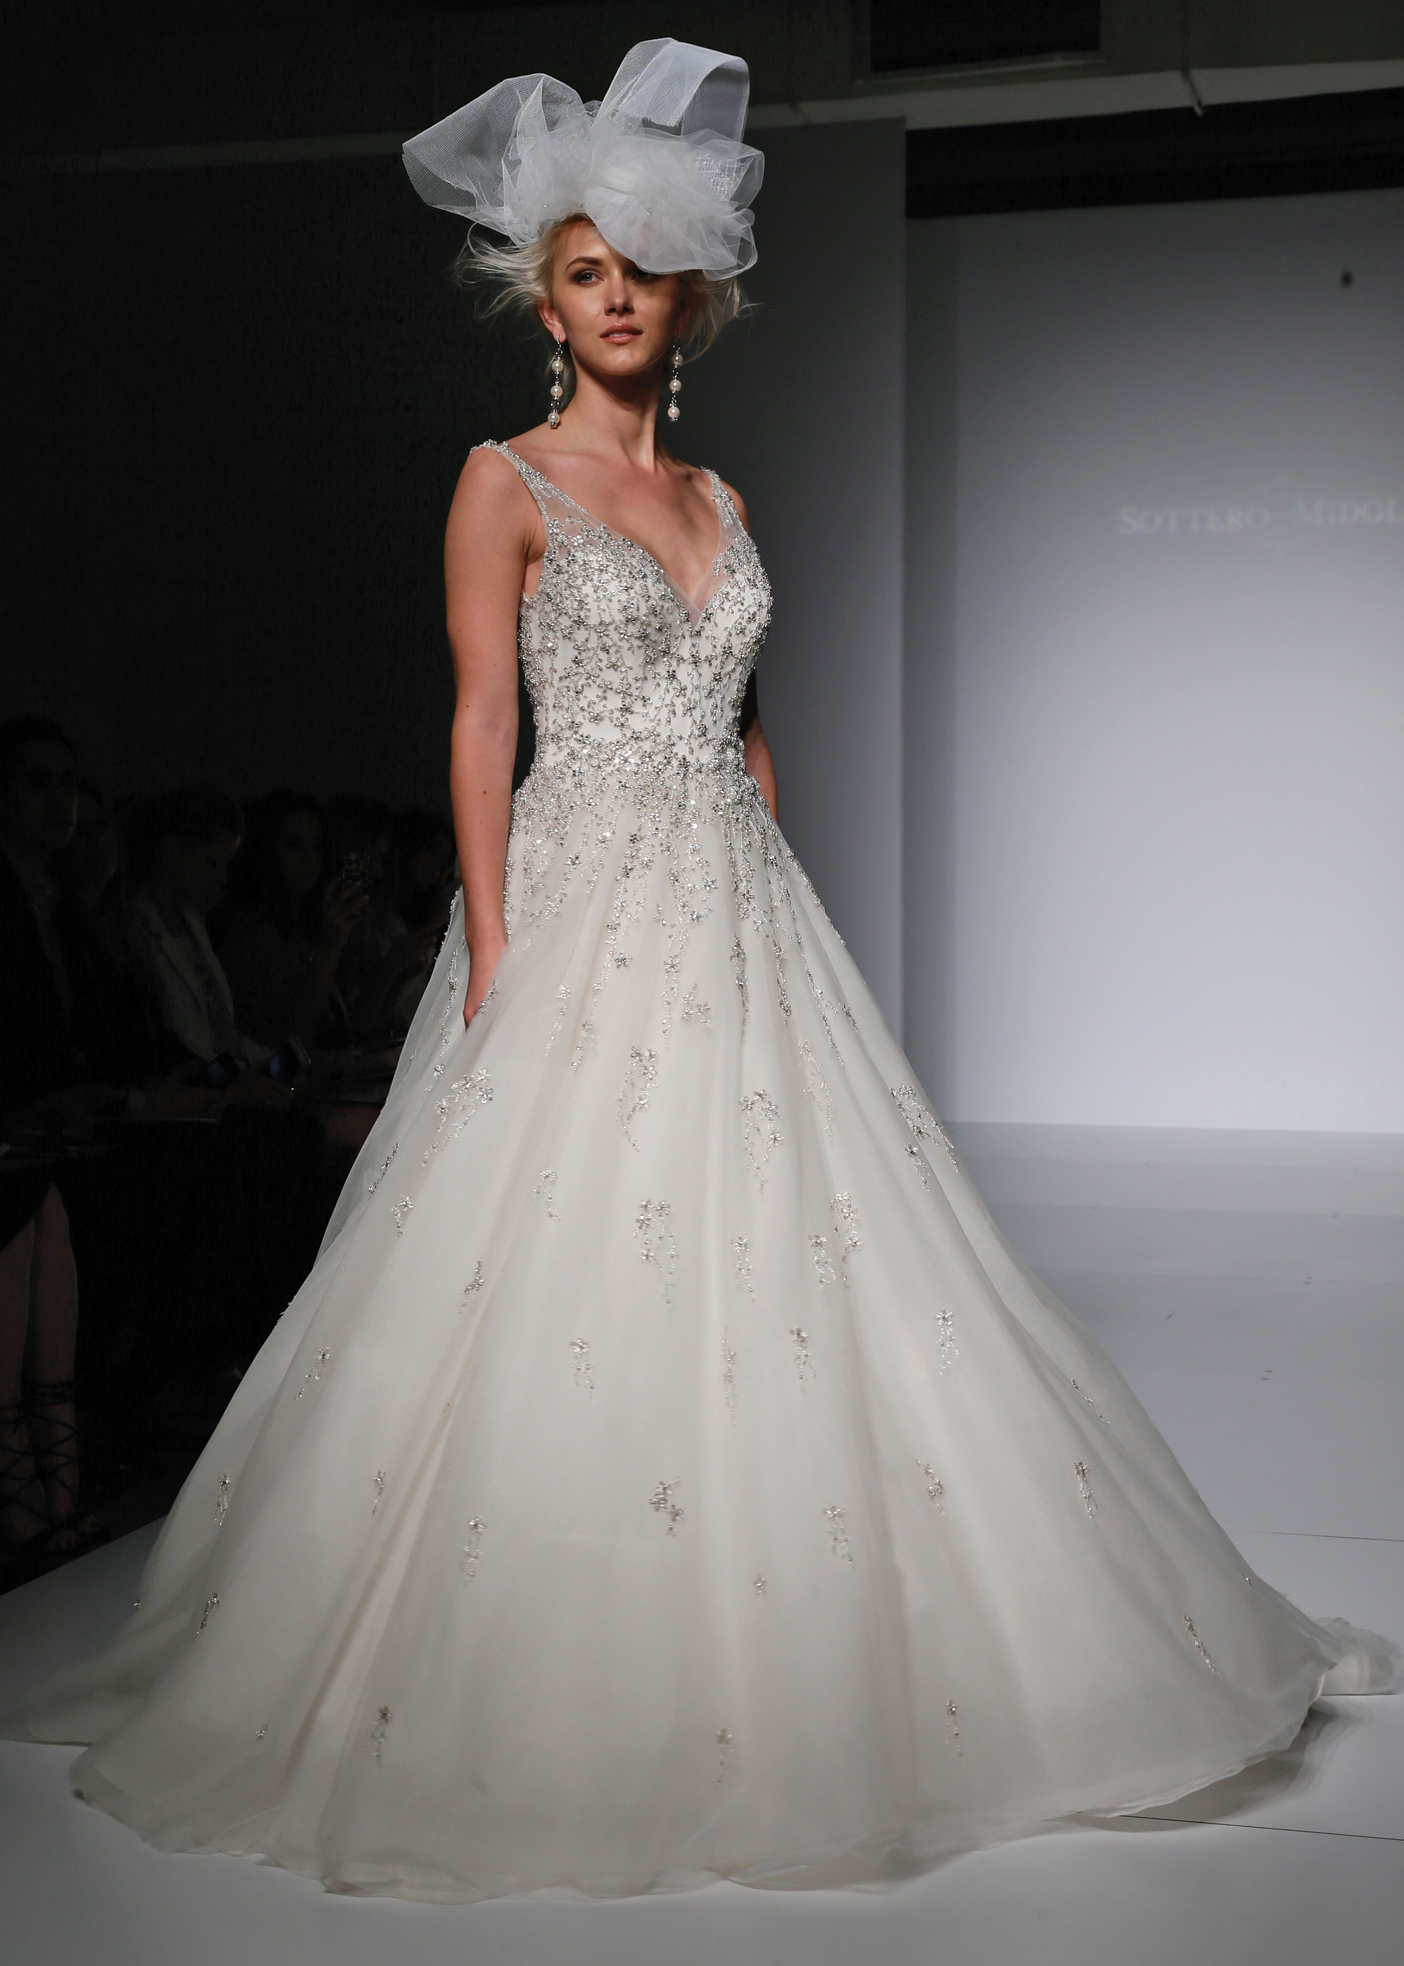 Maggie Sottero Bridal Gown Price Range - Discount Wedding Dresses